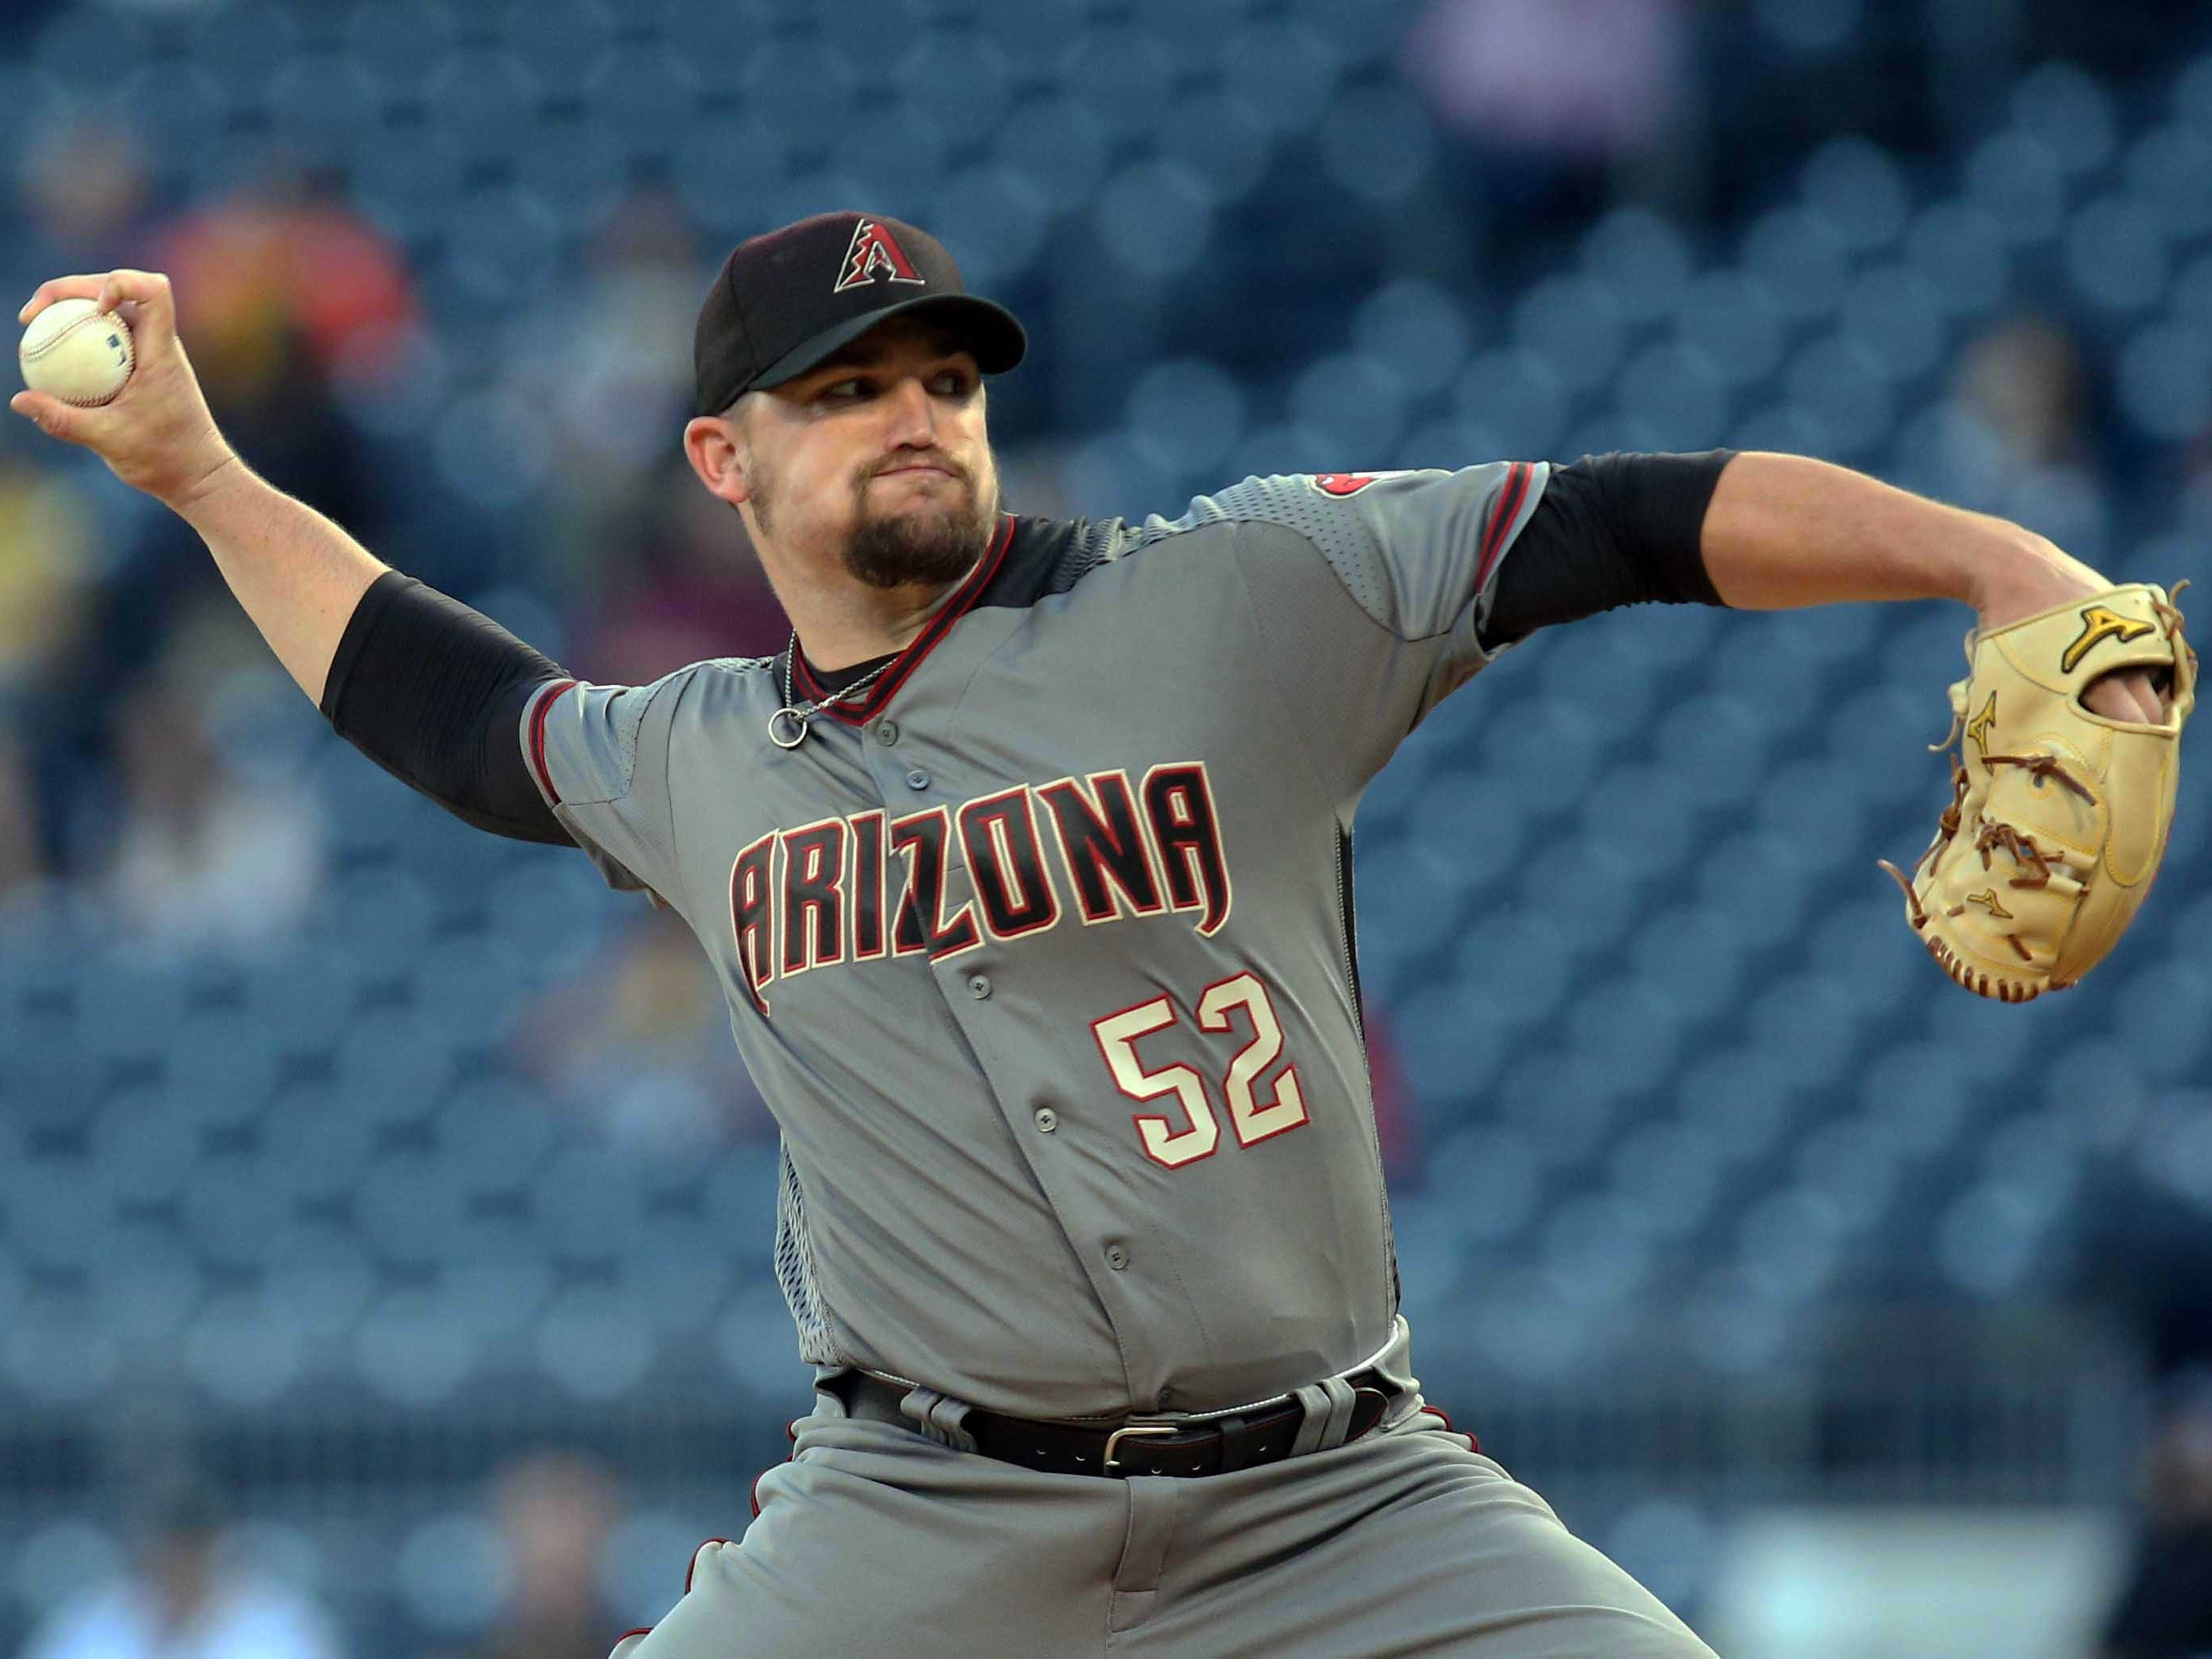 Apr 22, 2019; Pittsburgh, PA, USA;  Arizona Diamondbacks starting pitcher Zack Godley (52) delivers a pitch against the Pittsburgh Pirates during the first inning at PNC Park.